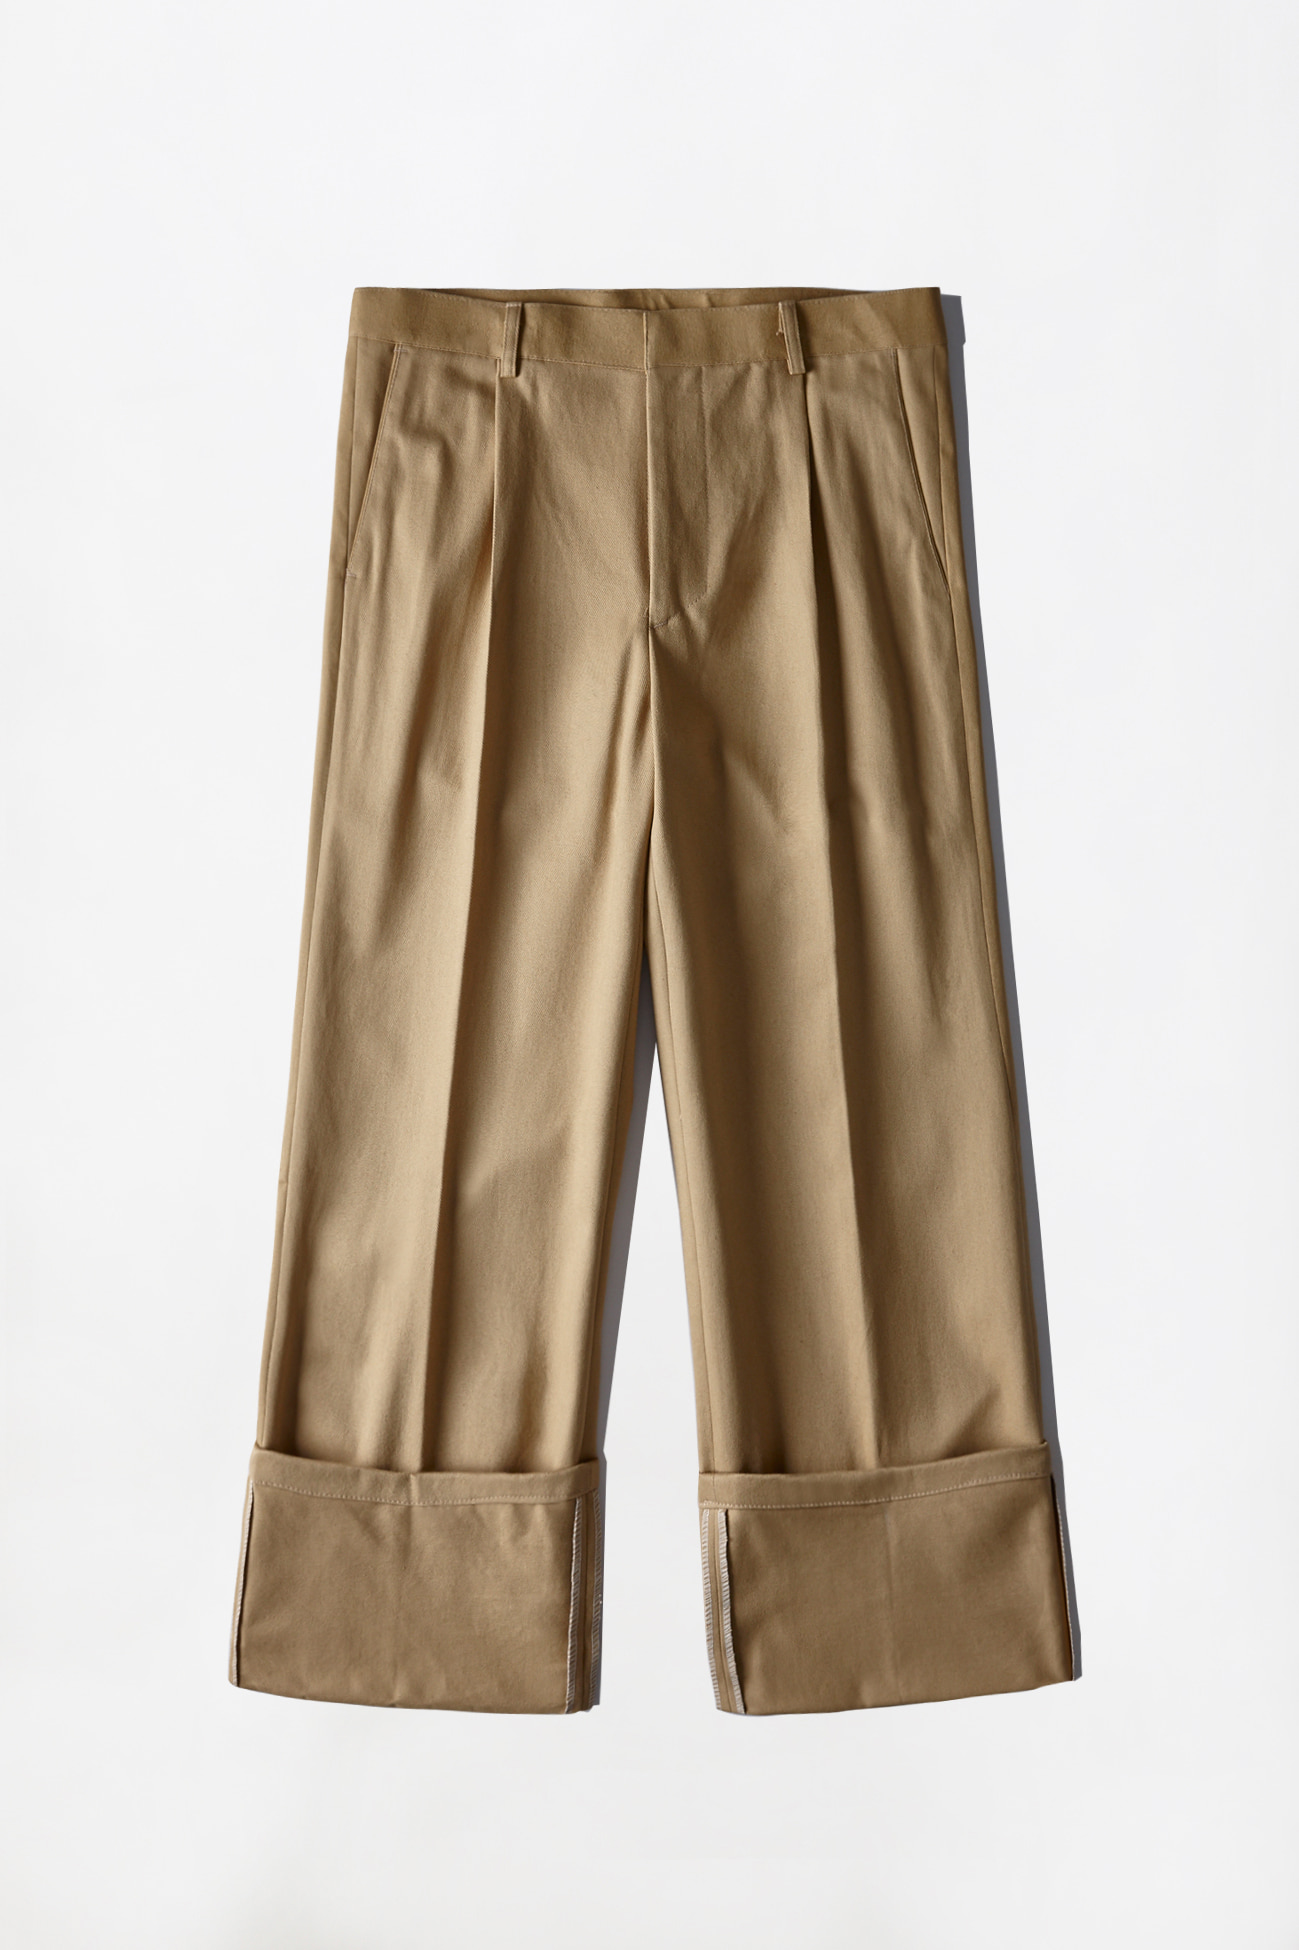 [UNISEX] CHINO ROLL-UP PANTS _ LIGHT BEIGE